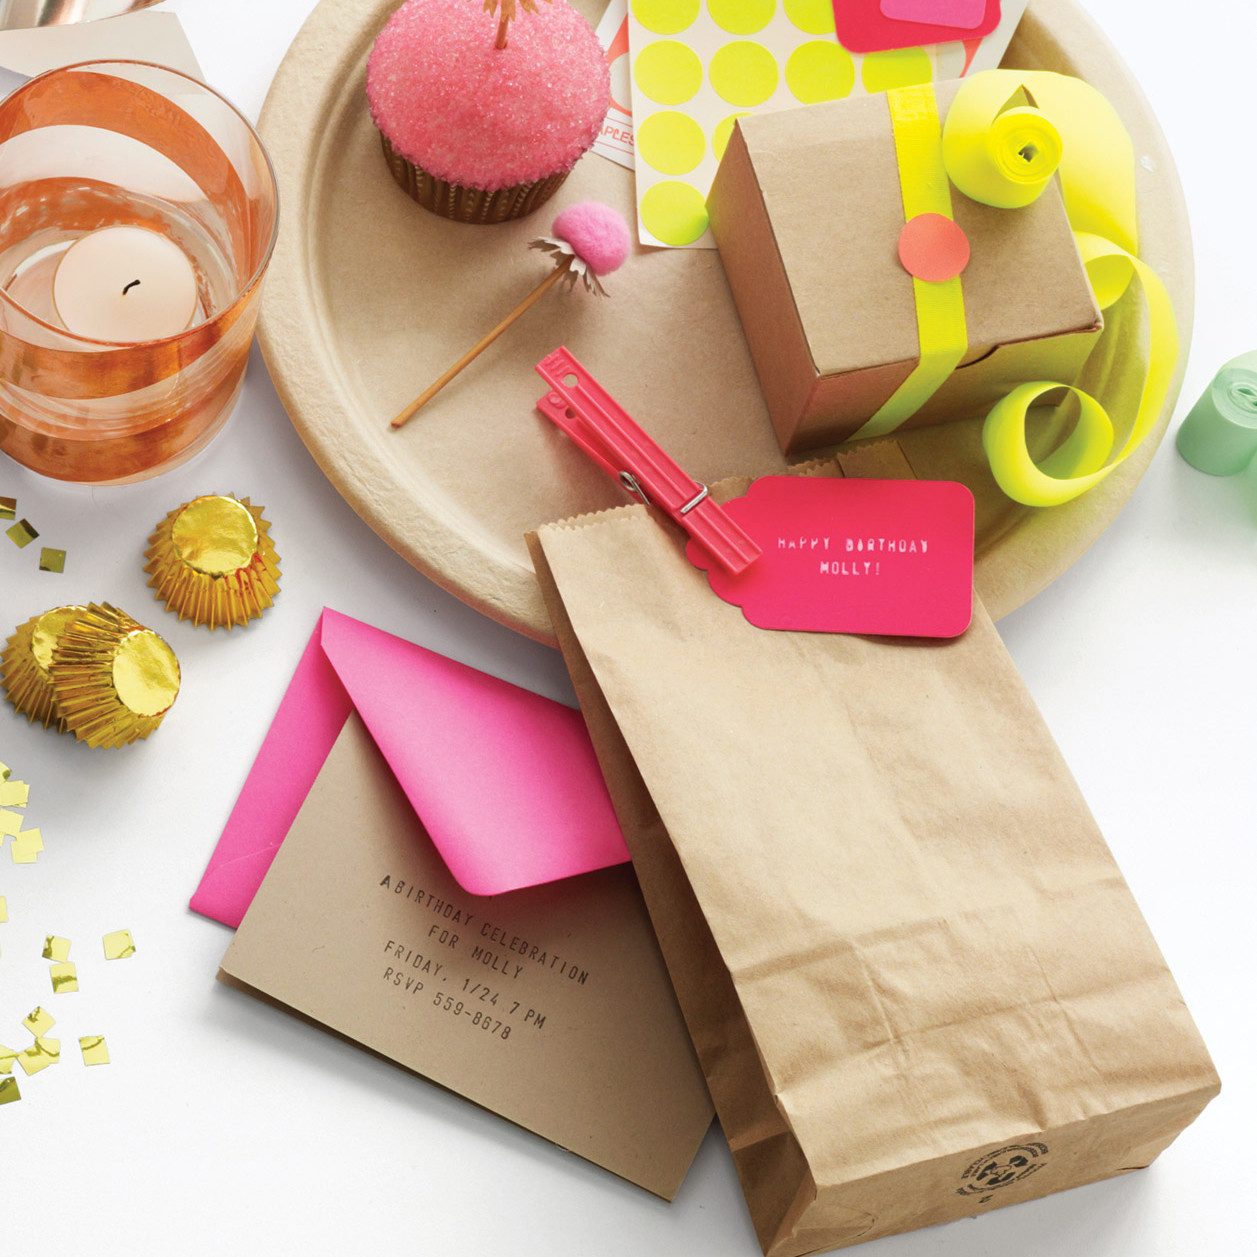 Giveaways ideas for debut party